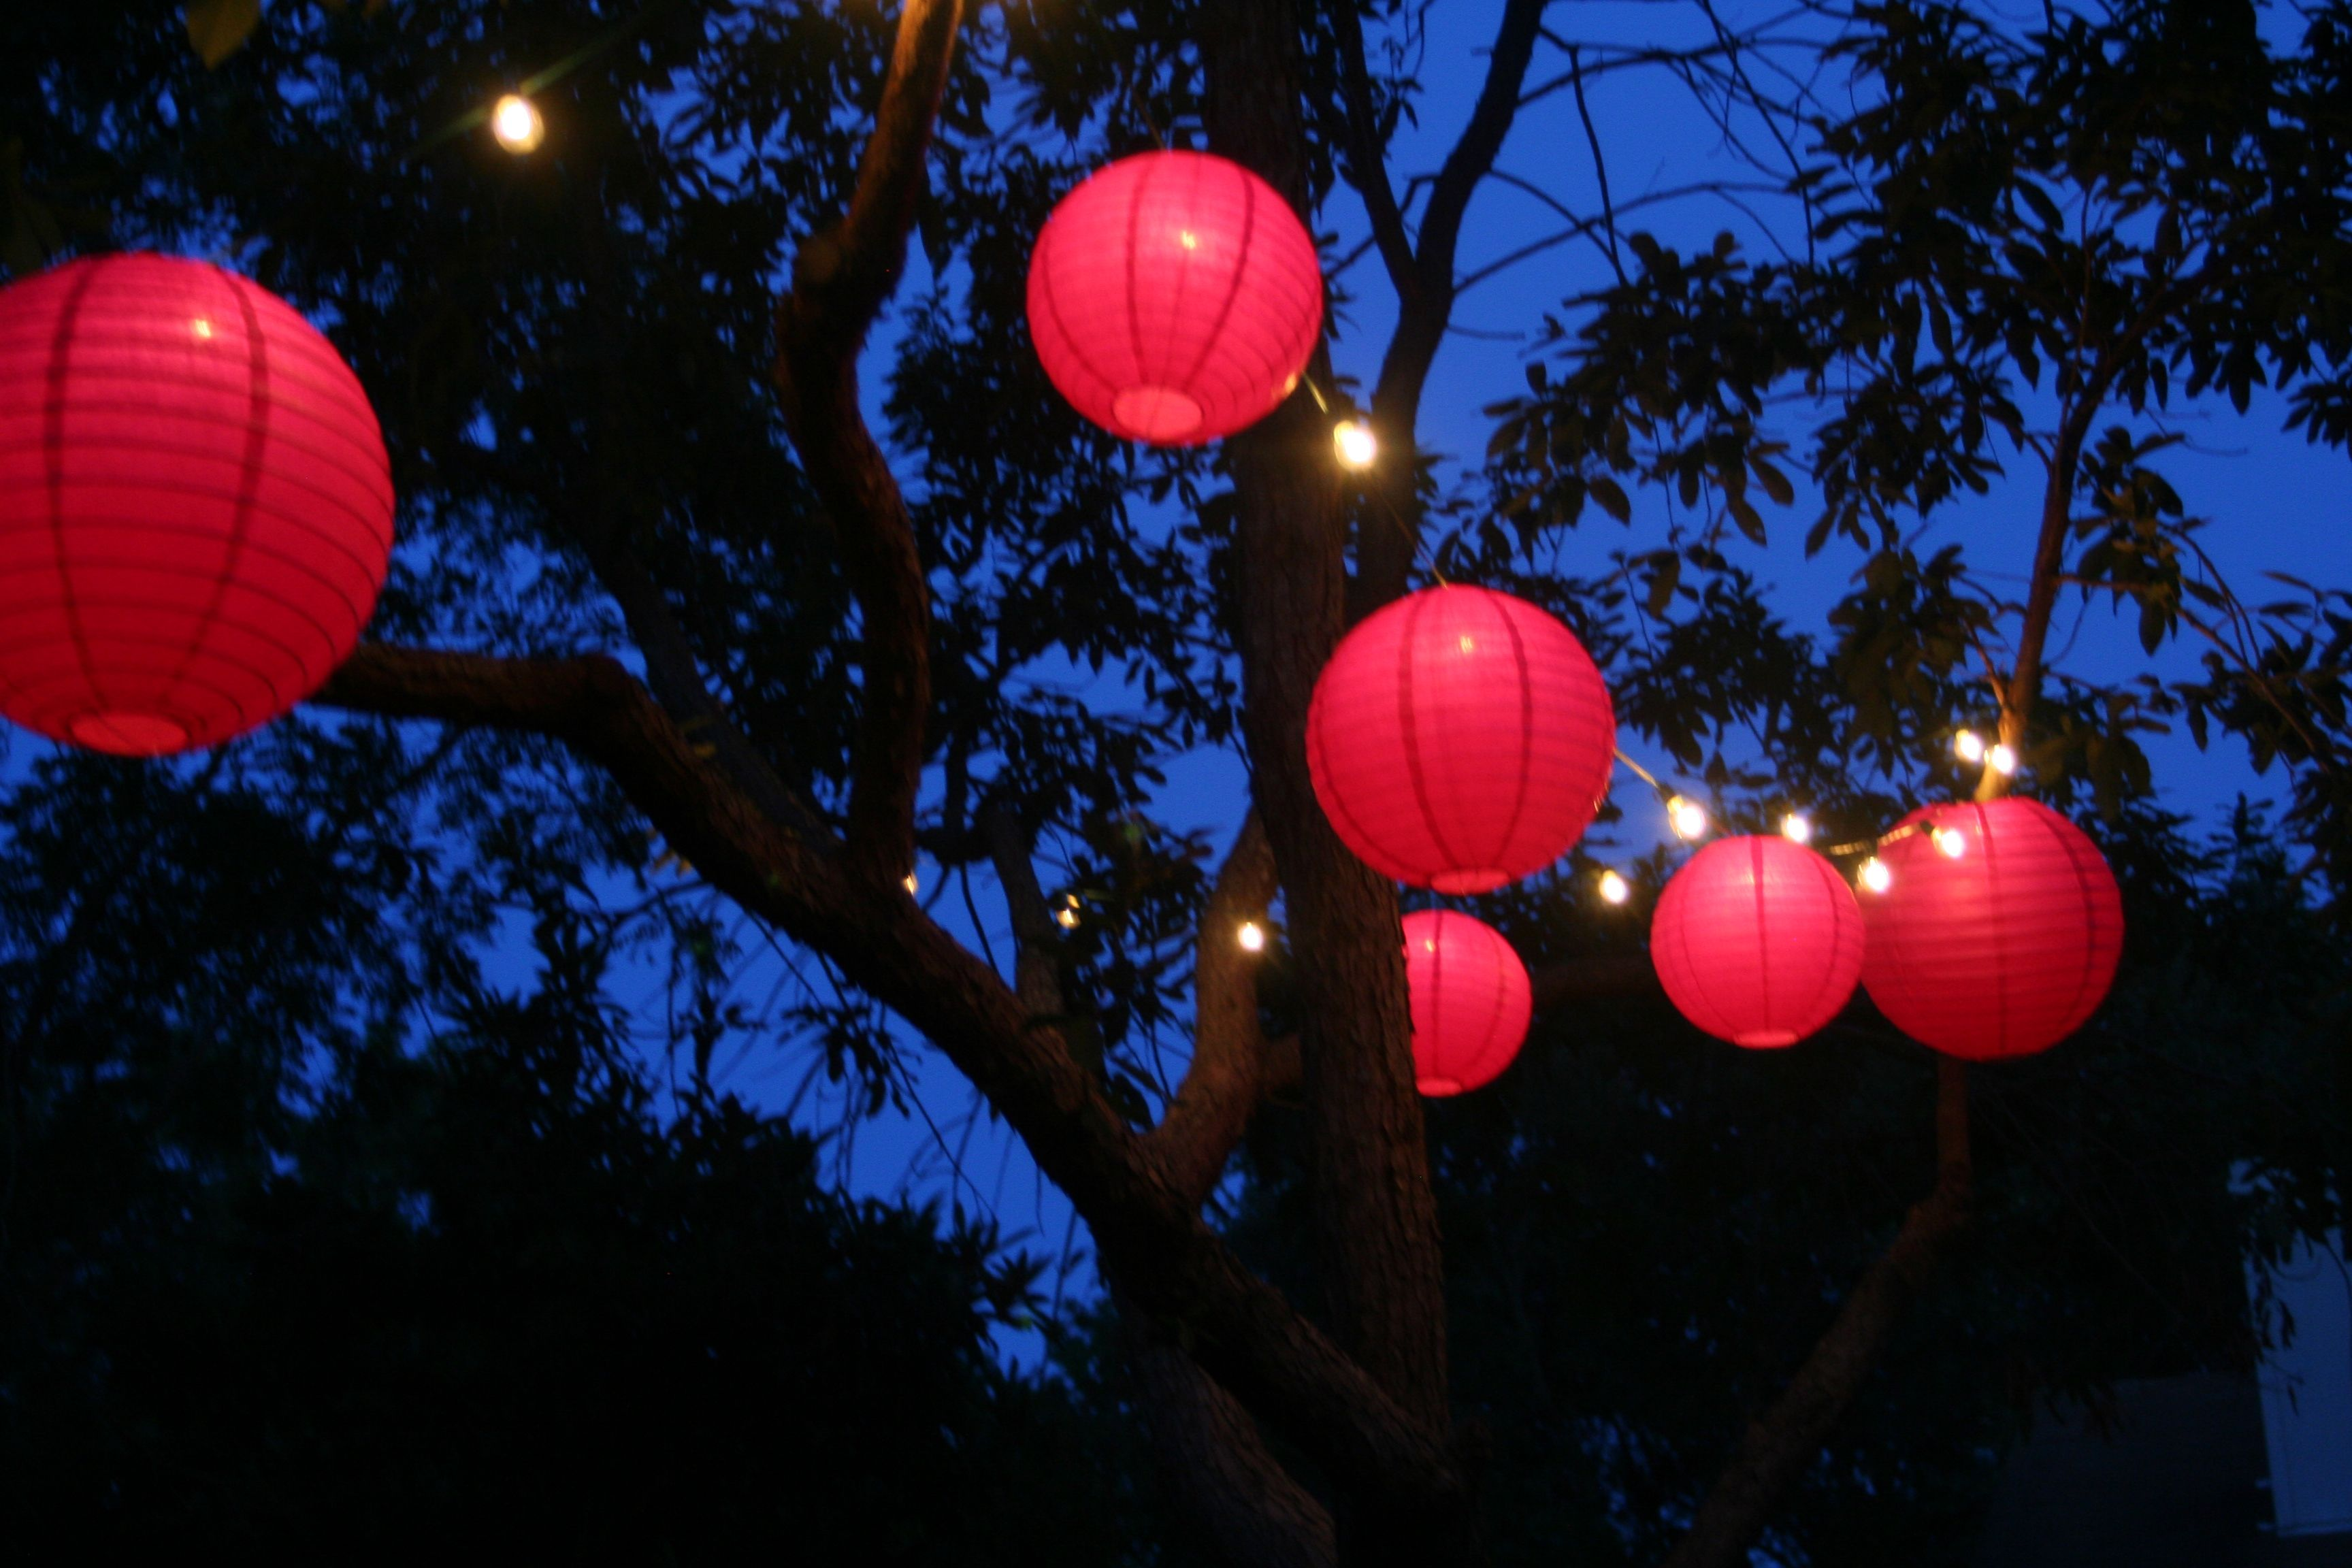 Paper Lanterns Walmart Amazing Backyard Decorlights And Pink Paper Lanterns They Have Them At 2018